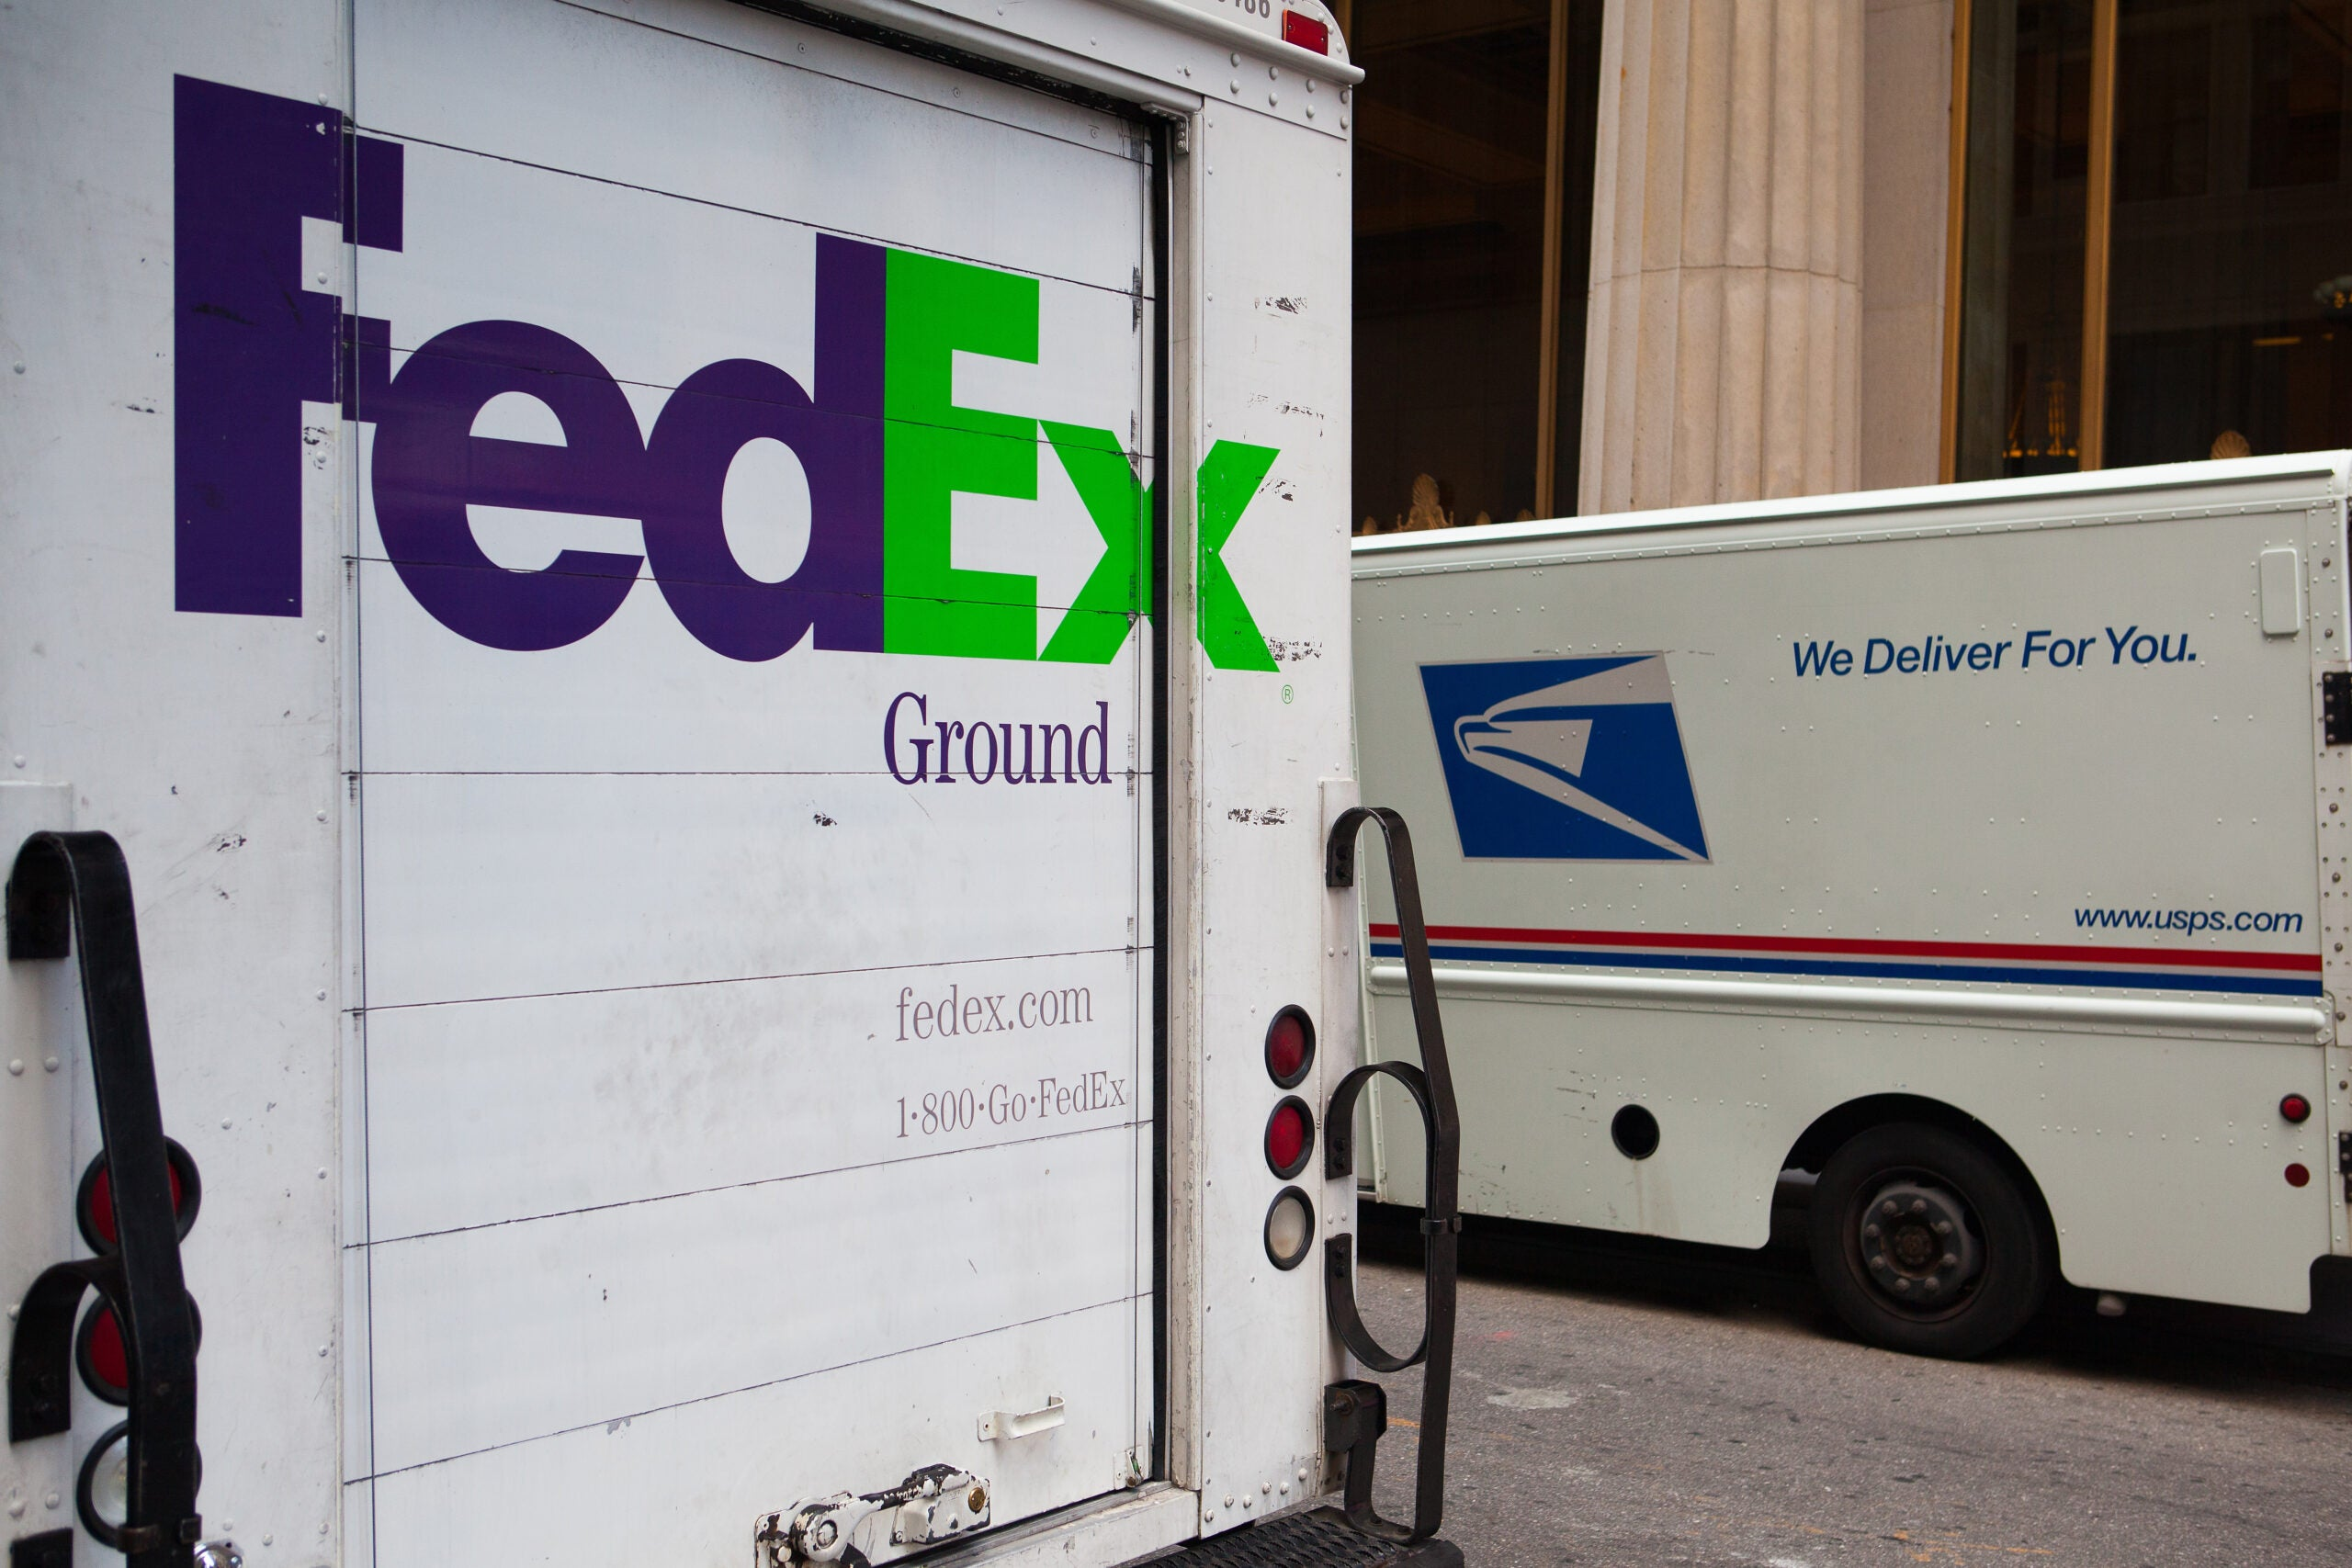 FedEx has some pretty intense plans to get through any potential disaster